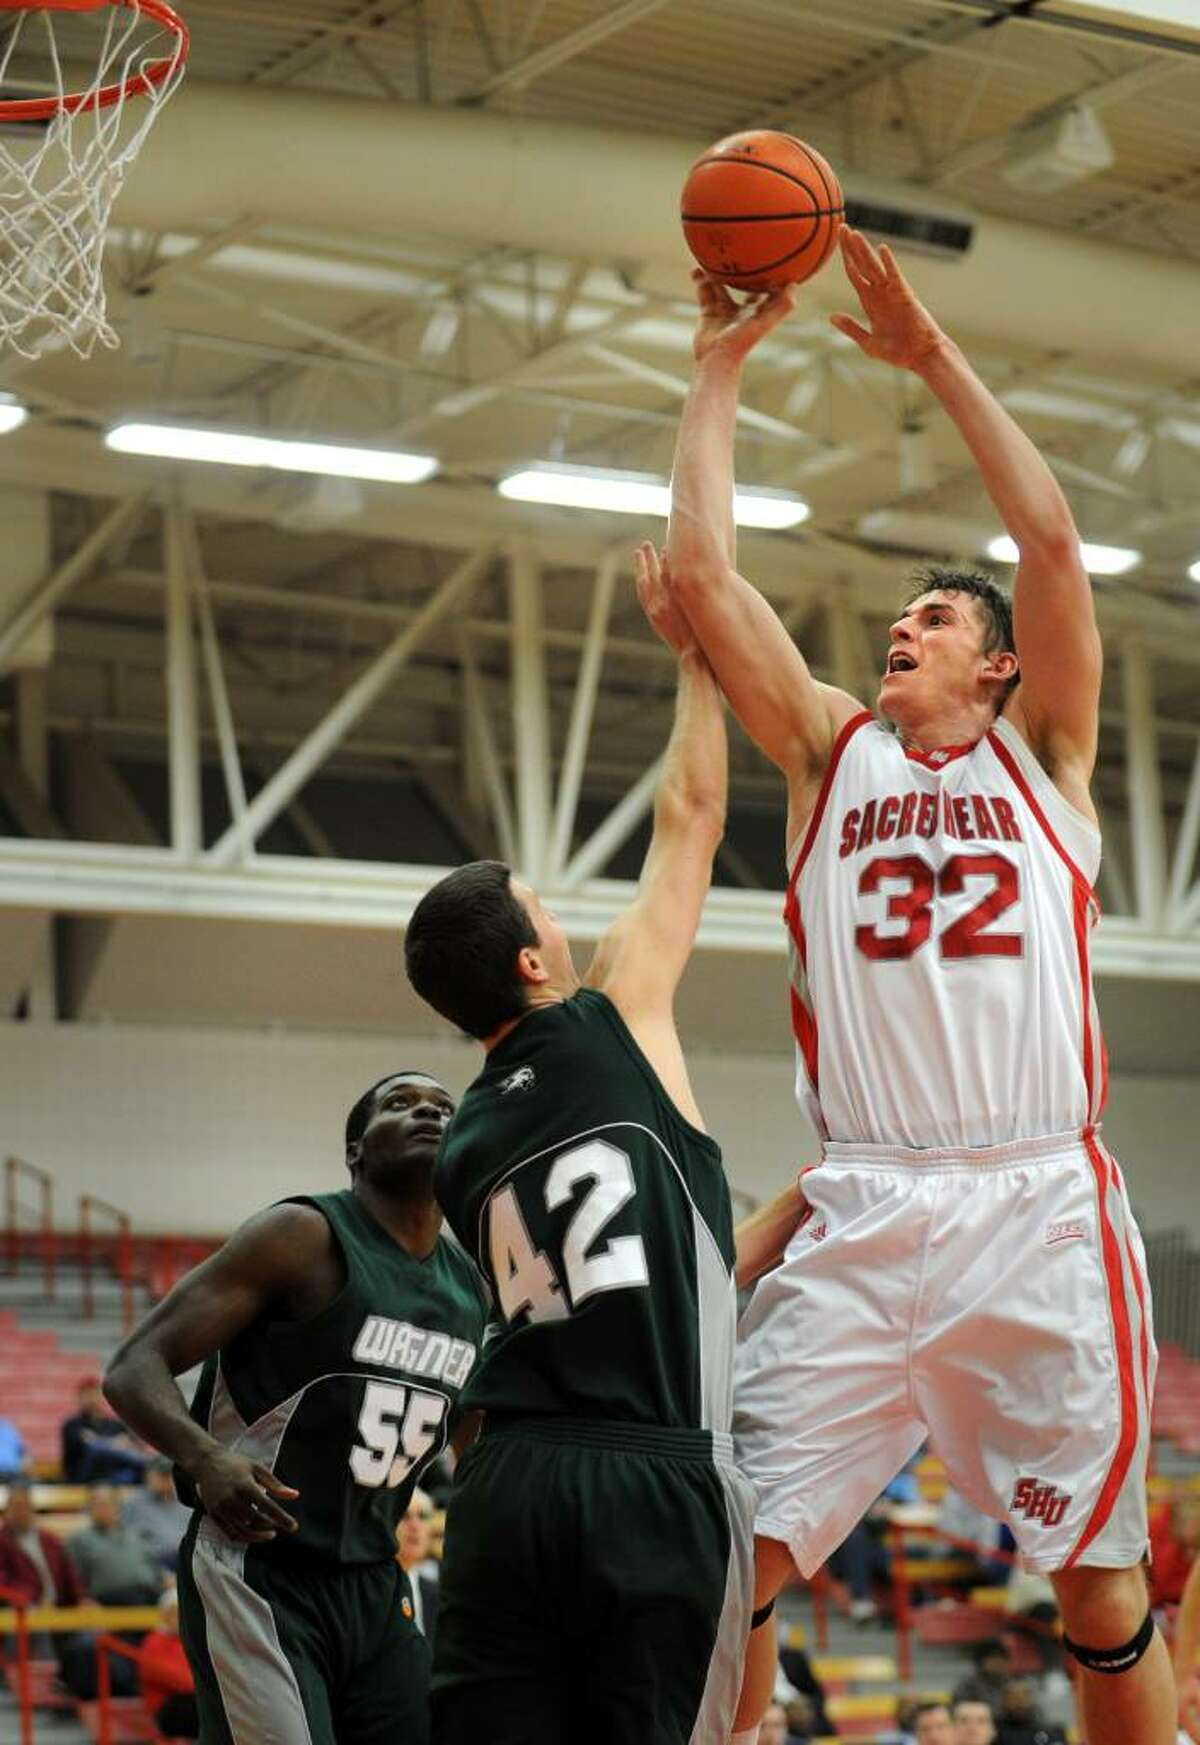 Sacred Heart's Liam Potter puts up the ball as Wagner's Ryan Schrotenboer defends during the first half of Thursday night's game at the Pitt Center.